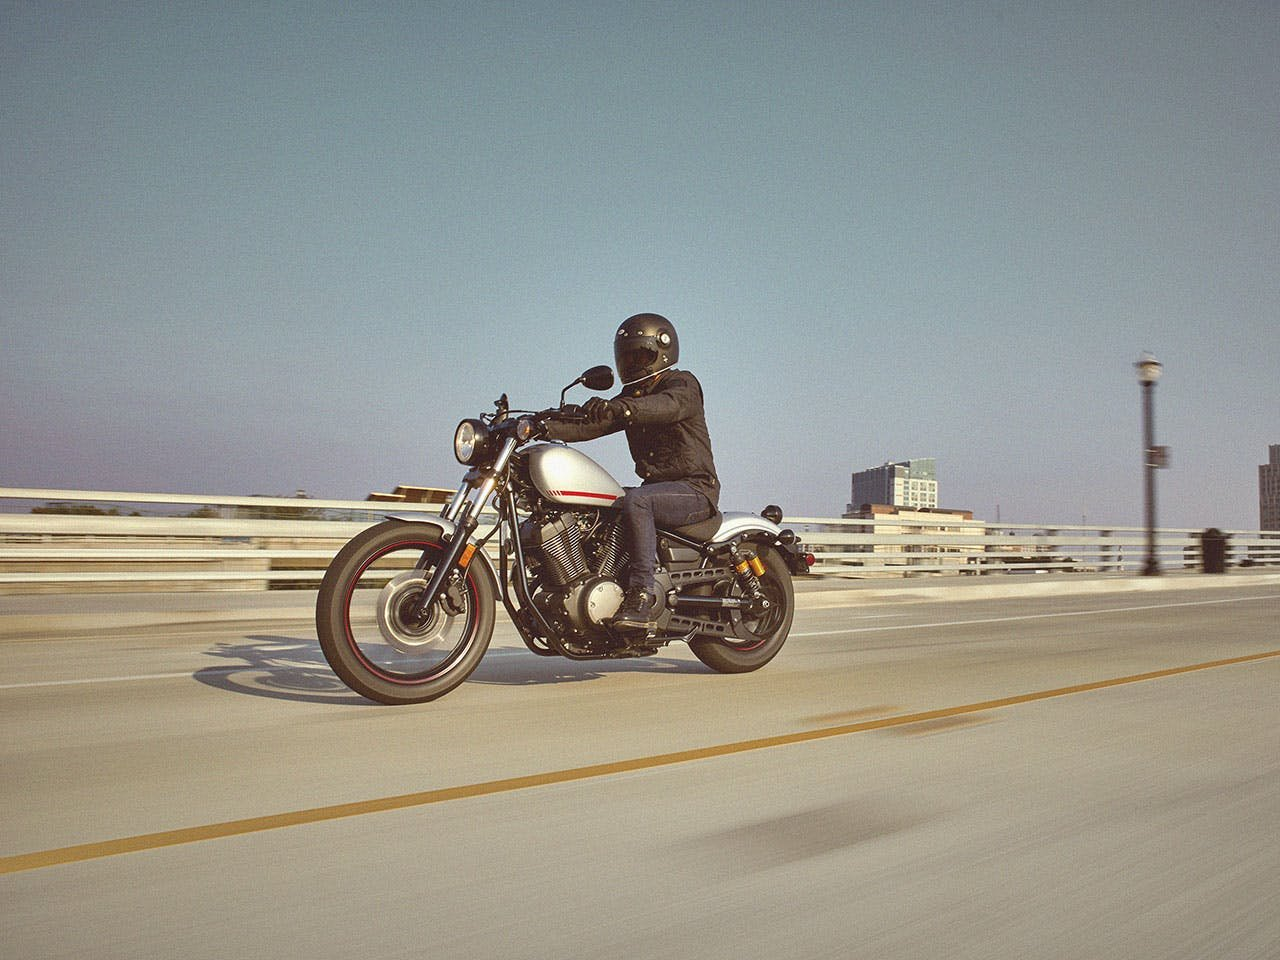 Yamaha Bolt R-Spec motorcycle riding on the road